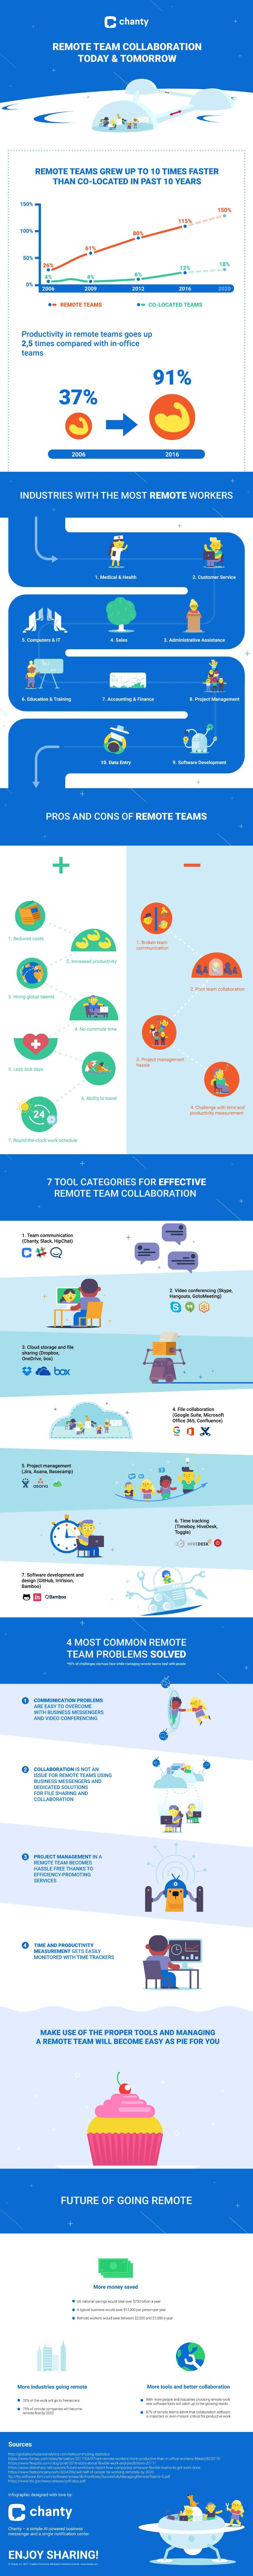 Effective Collaboration Strategies for Remote Teams - Infographic